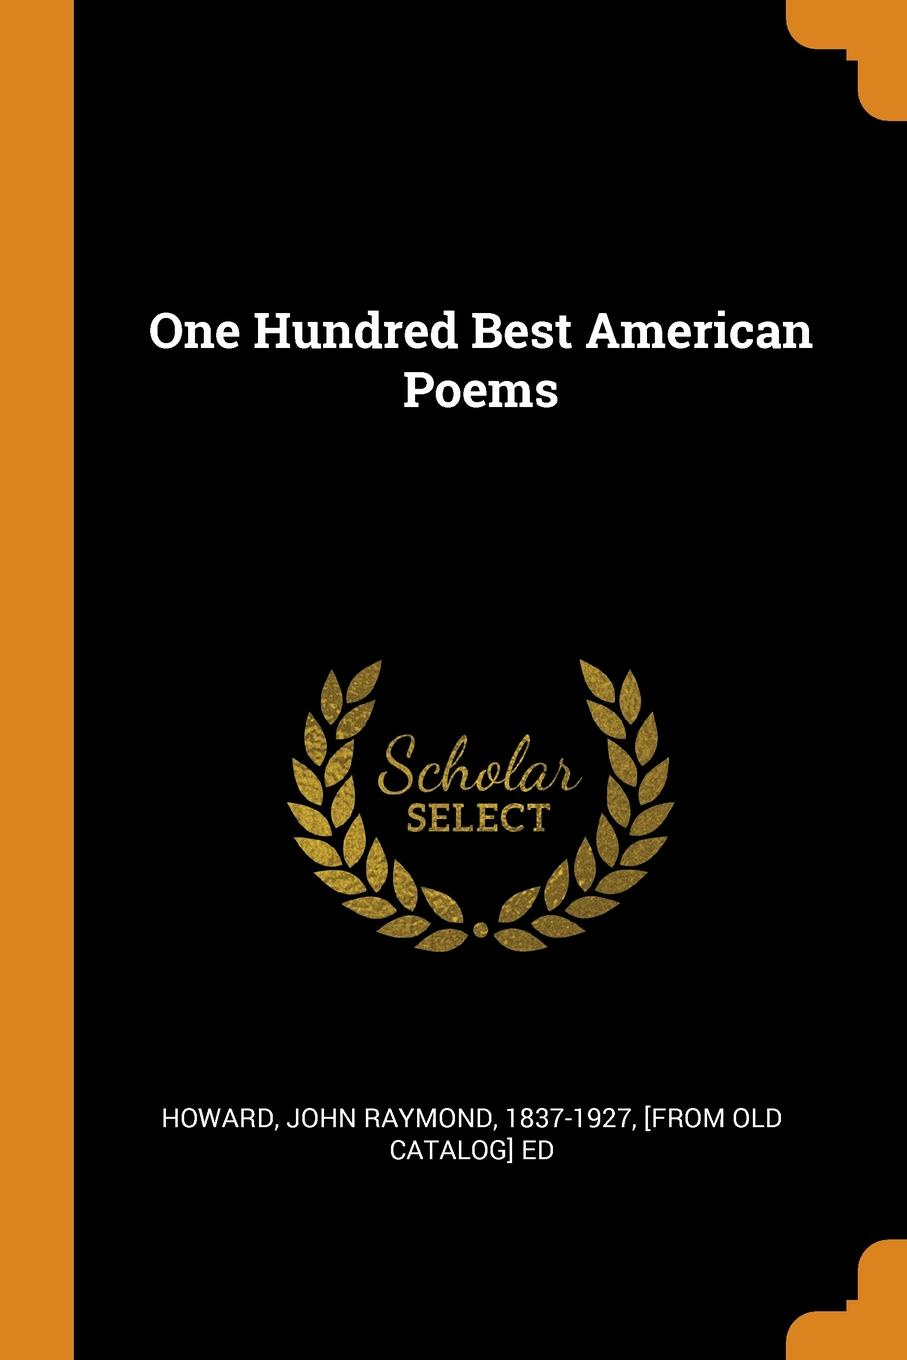 One Hundred Best American Poems